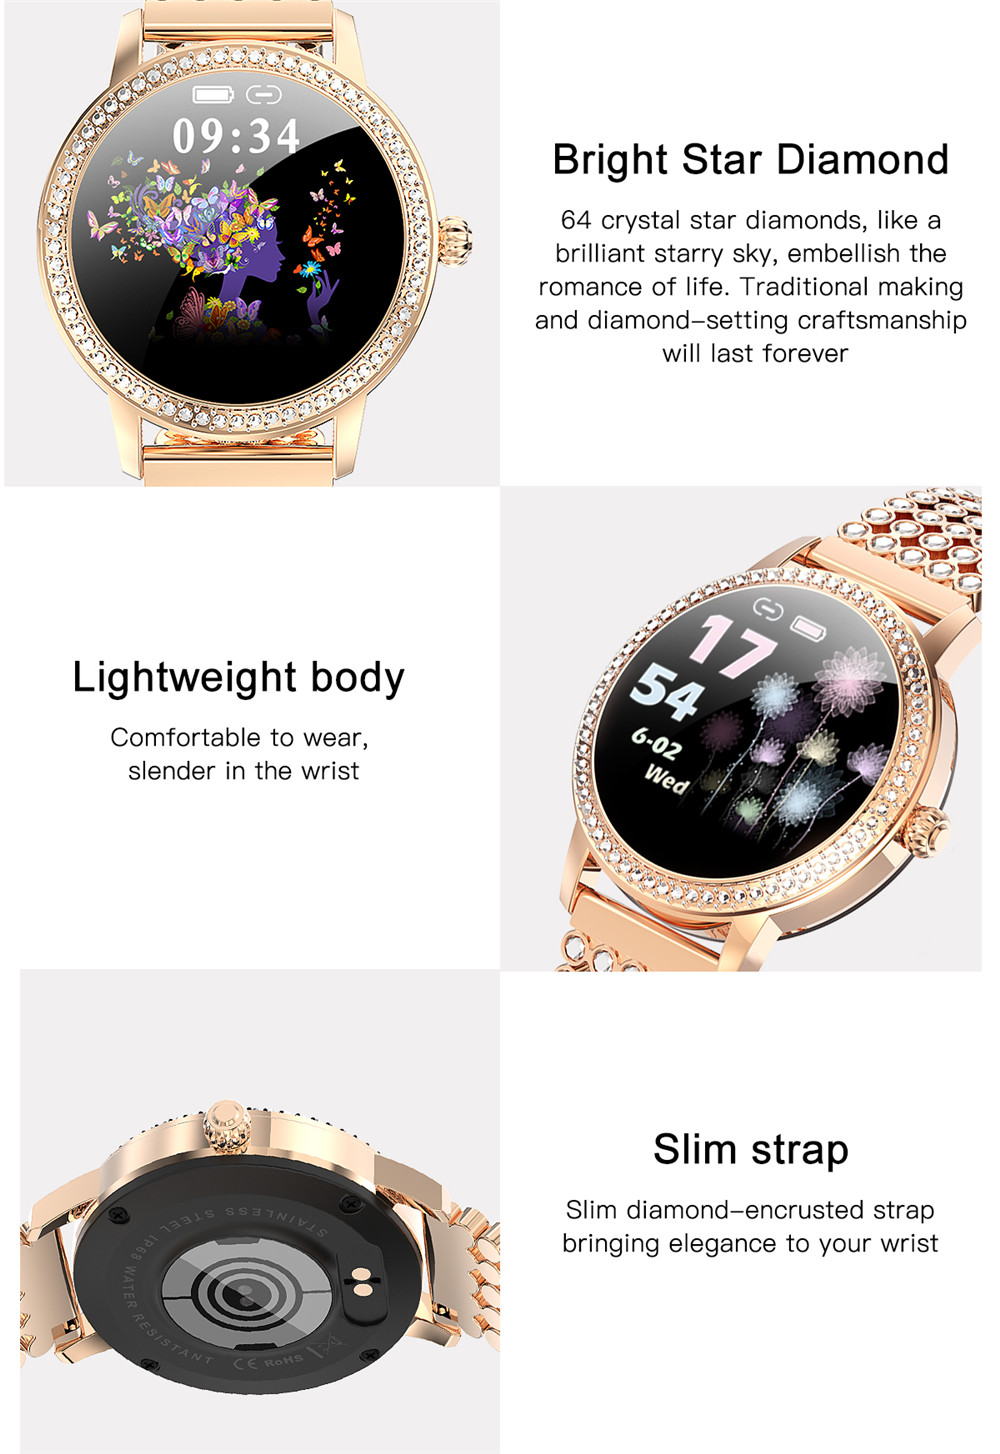 Diamond-studded Smart Watch 2021 For Women Lovely Steel Sport Watch IP68 waterproof Fitness bracelet Heart Rate LW20 Smartwatch